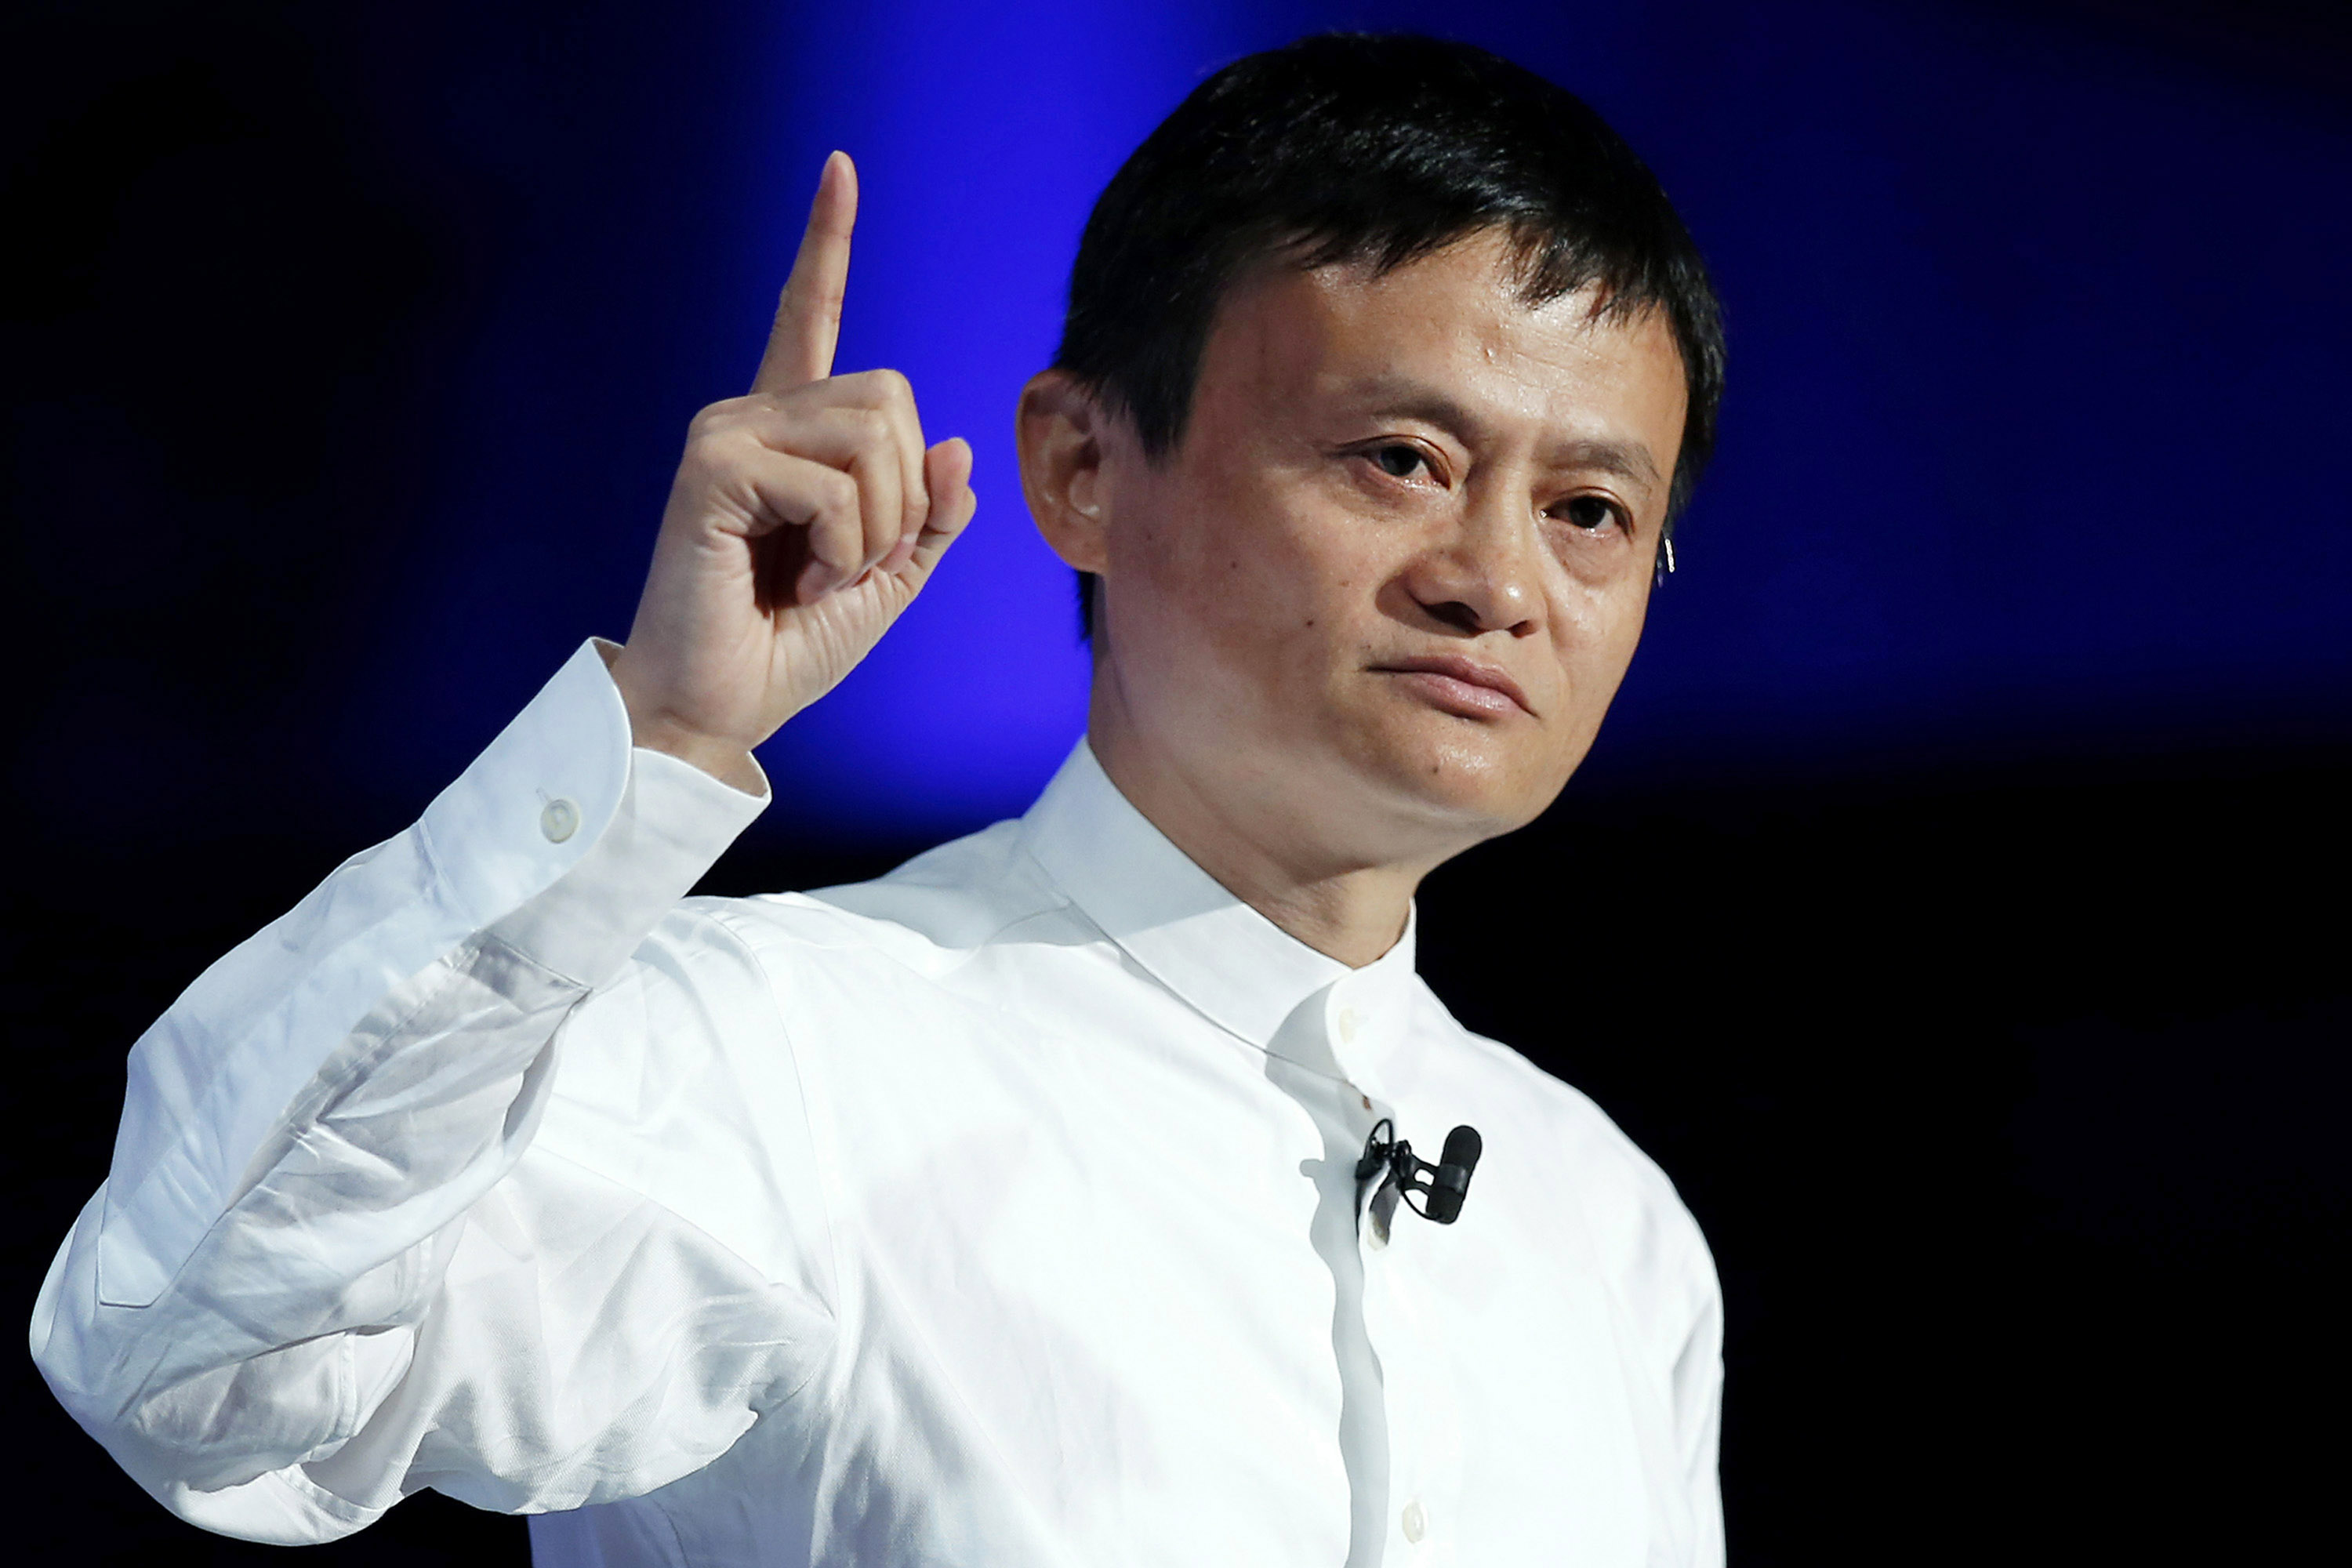 Jack Ma, chairman of Alibaba Group Holding Ltd., gestures as he speaks at SoftBank World 2014 in Tokyo, Japan, on Tuesday, July 15, 2014. As Softbank Corp.  Chief Executive Officer Masayoshi Son pushes for a Takeover of T-Mobile US Inc., the Japanese Billionaire is asking banks to commit financing for a longer-than-usual amount of time, underscoring the intense regulatory review he faces.  Photographer: Kiyoshi Ota / Bloomberg *** Local Caption *** Jack Ma